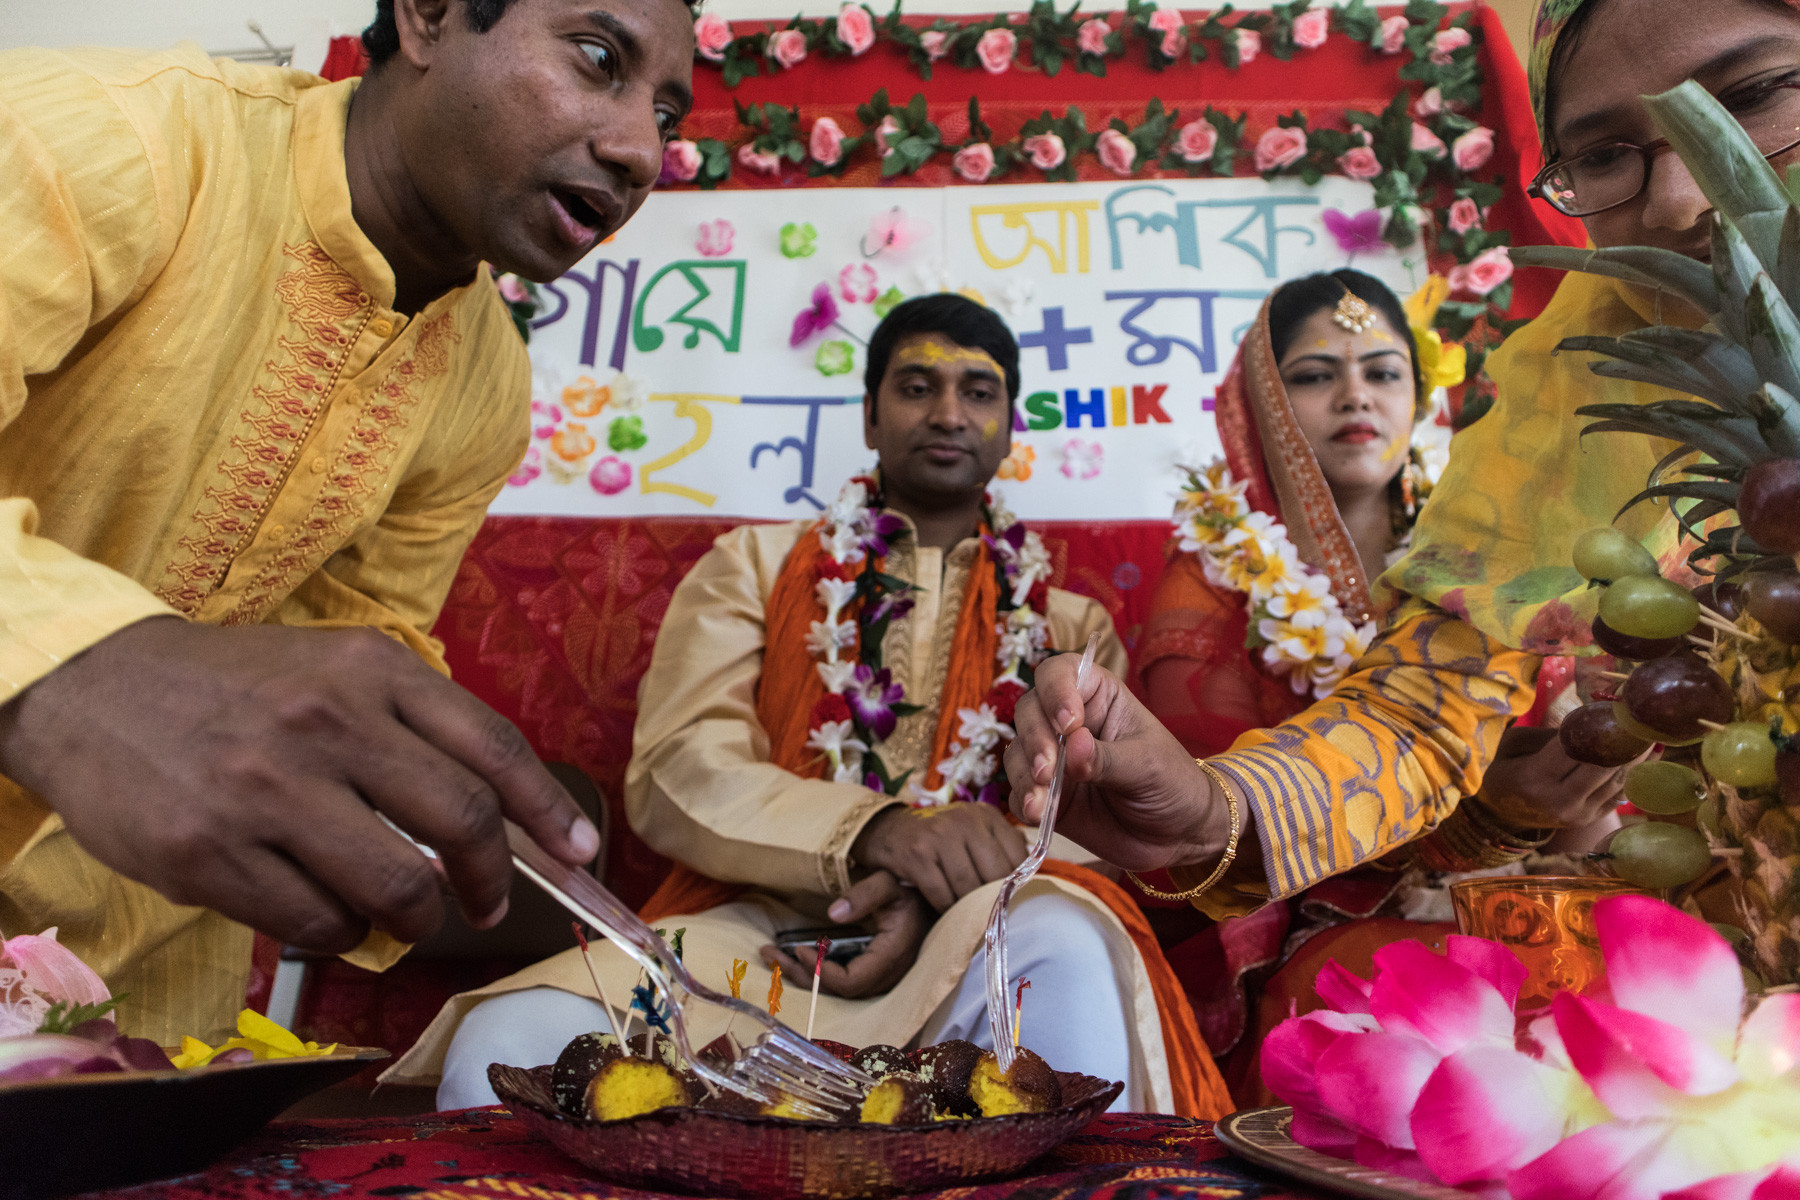 Attending guests feed the bride and groom with types of Bangladeshi sweets. It is a tradition where along with putting turmeric on bride and groom's face, the guests offers them sweets as a portrayal of a peaceful start to their marital life.